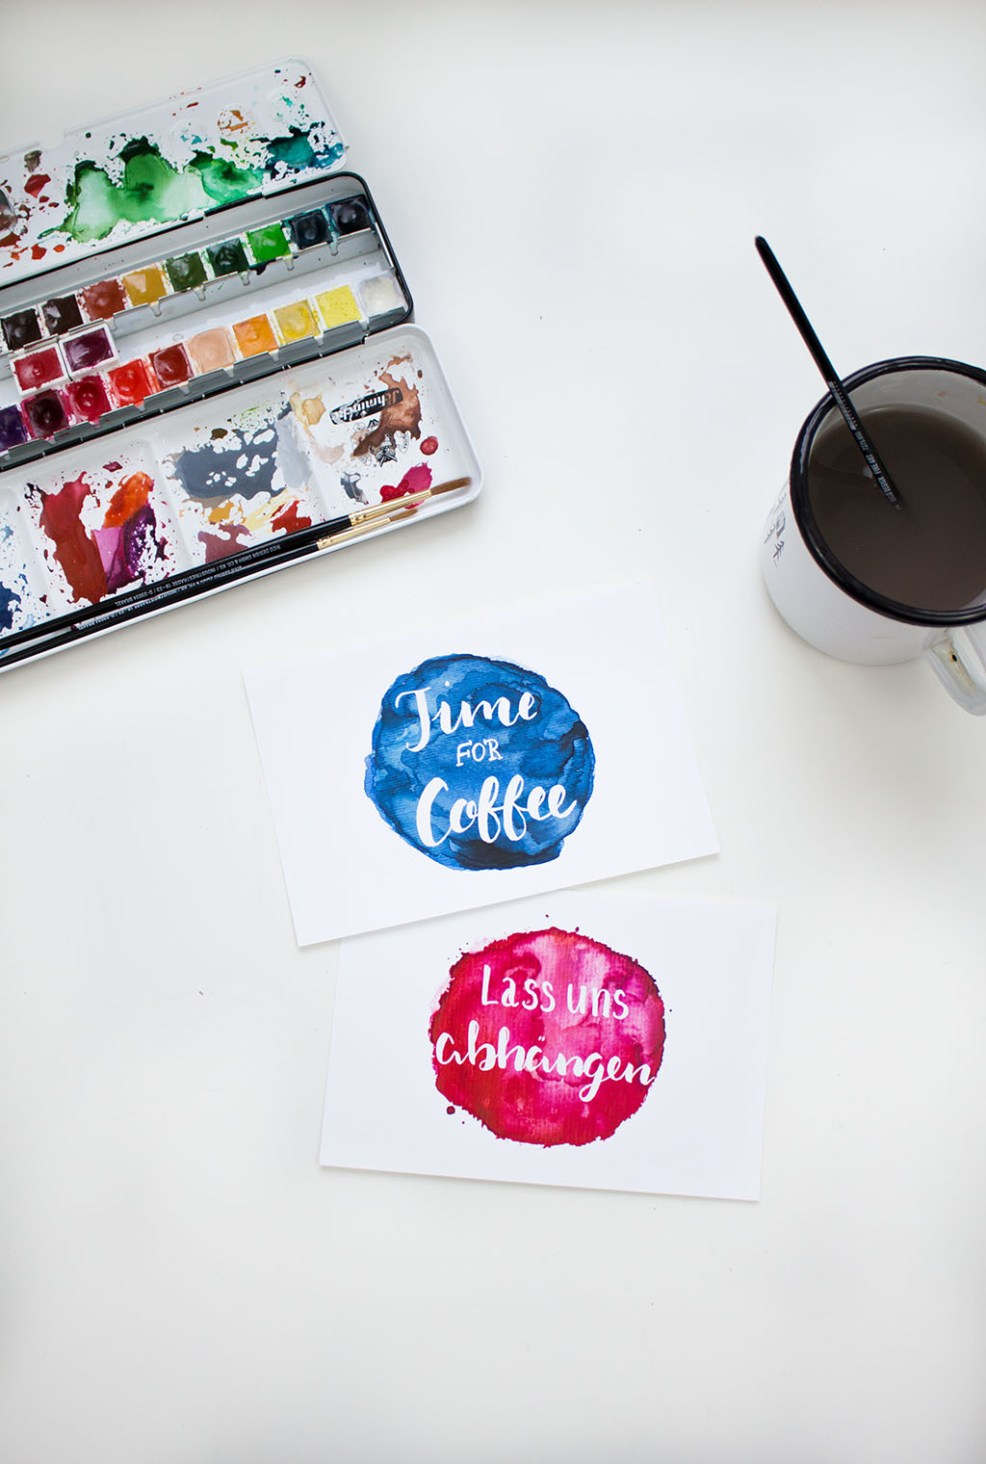 Frau Liebling - DIY Blog - Demo, Geschenke, Lettering, Illustrationen, Watercolour